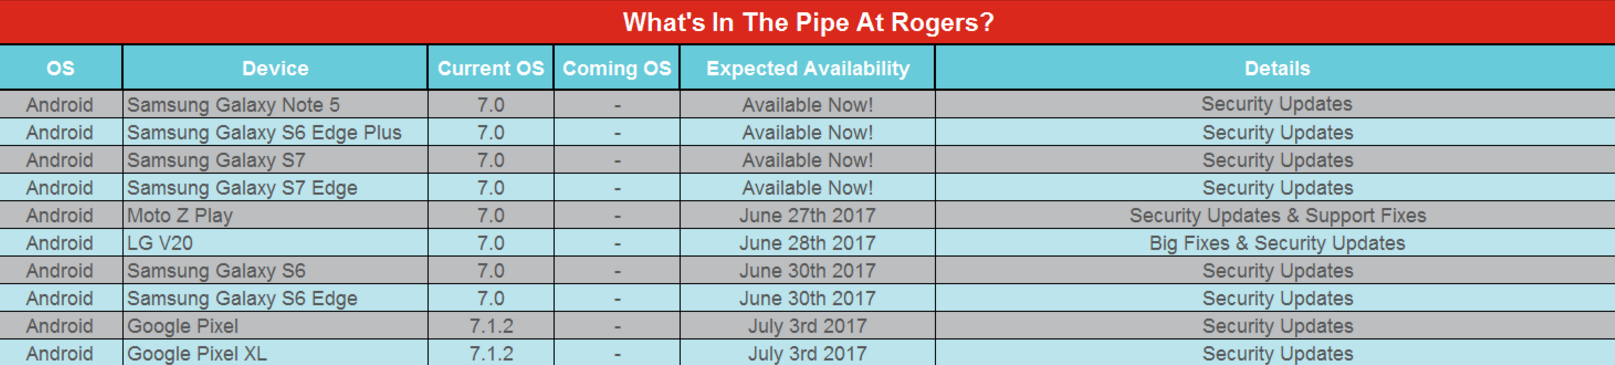 security update schedule rogers